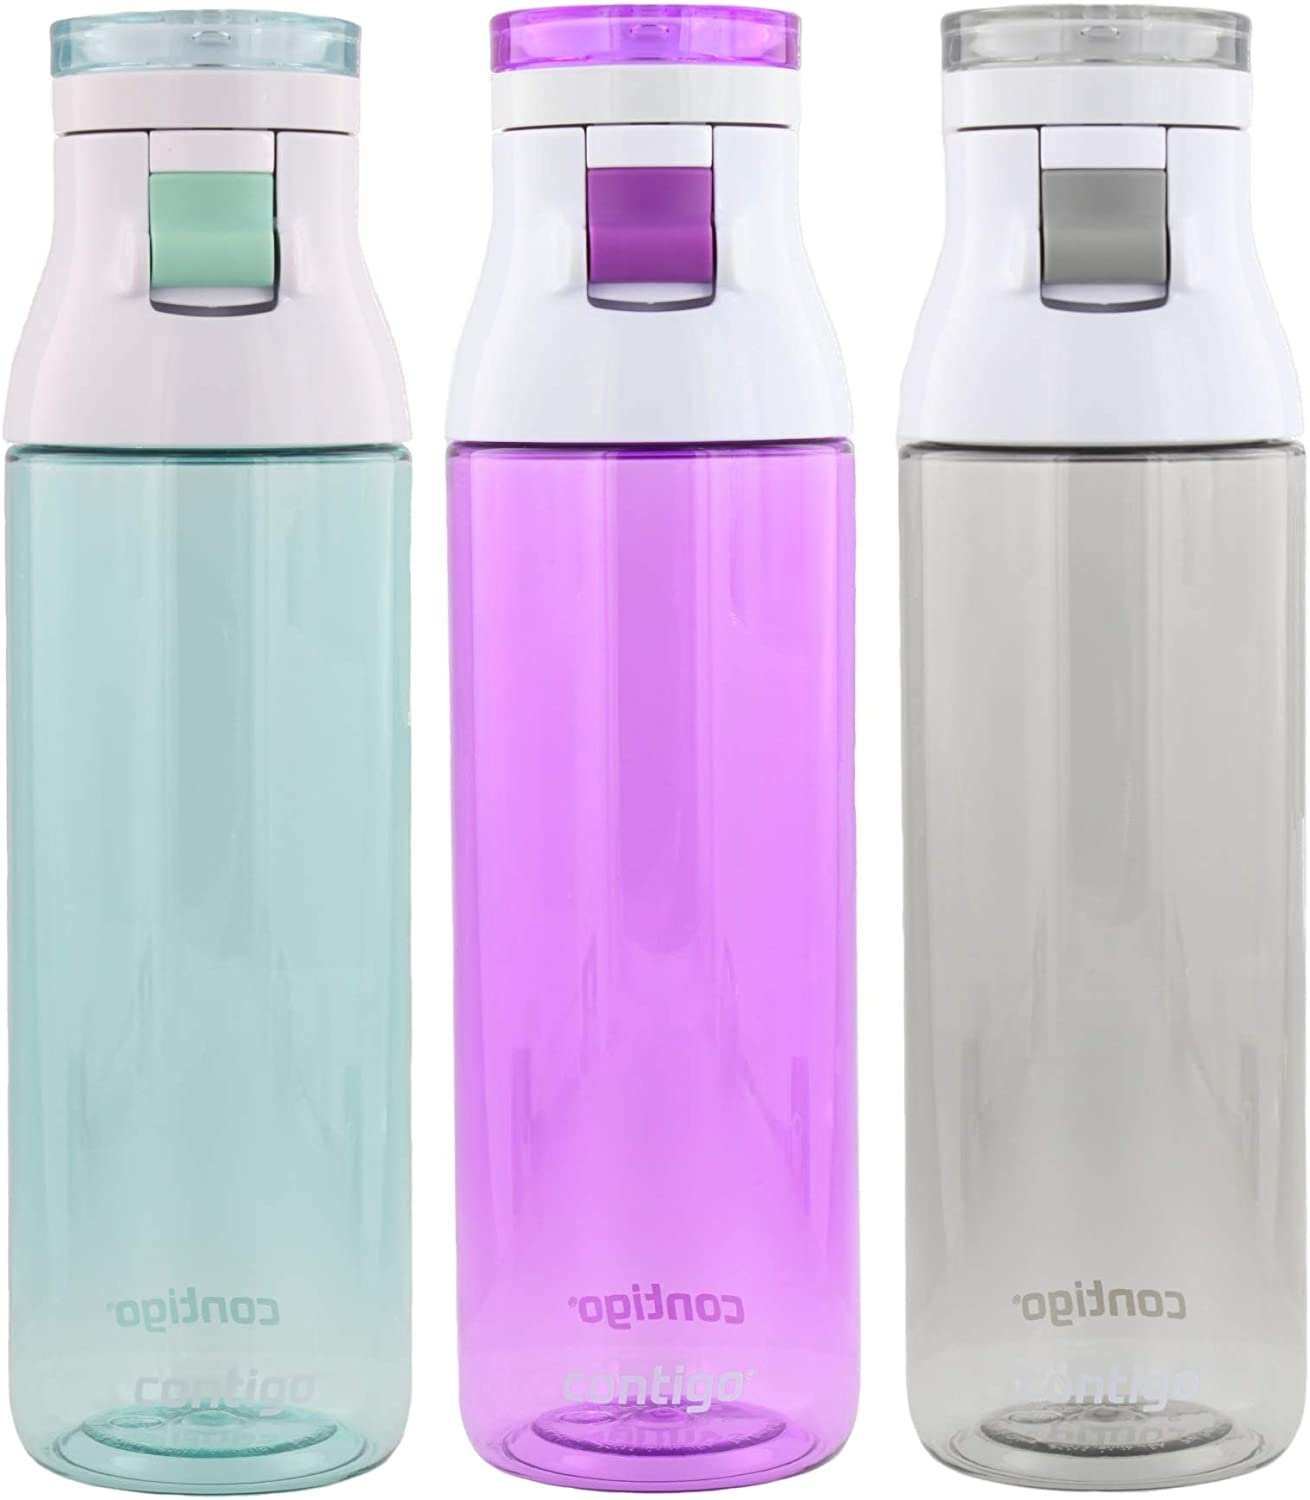 Contigo Jackson Reusable Water Bottle – BPA Free, Easy Push Button, Carry Loop - Top Rack Dishwasher Safe - Great for Sports, Home, Travel- 24oz, Greyed Jade, Radiant Orchid & Smoke (3pk)